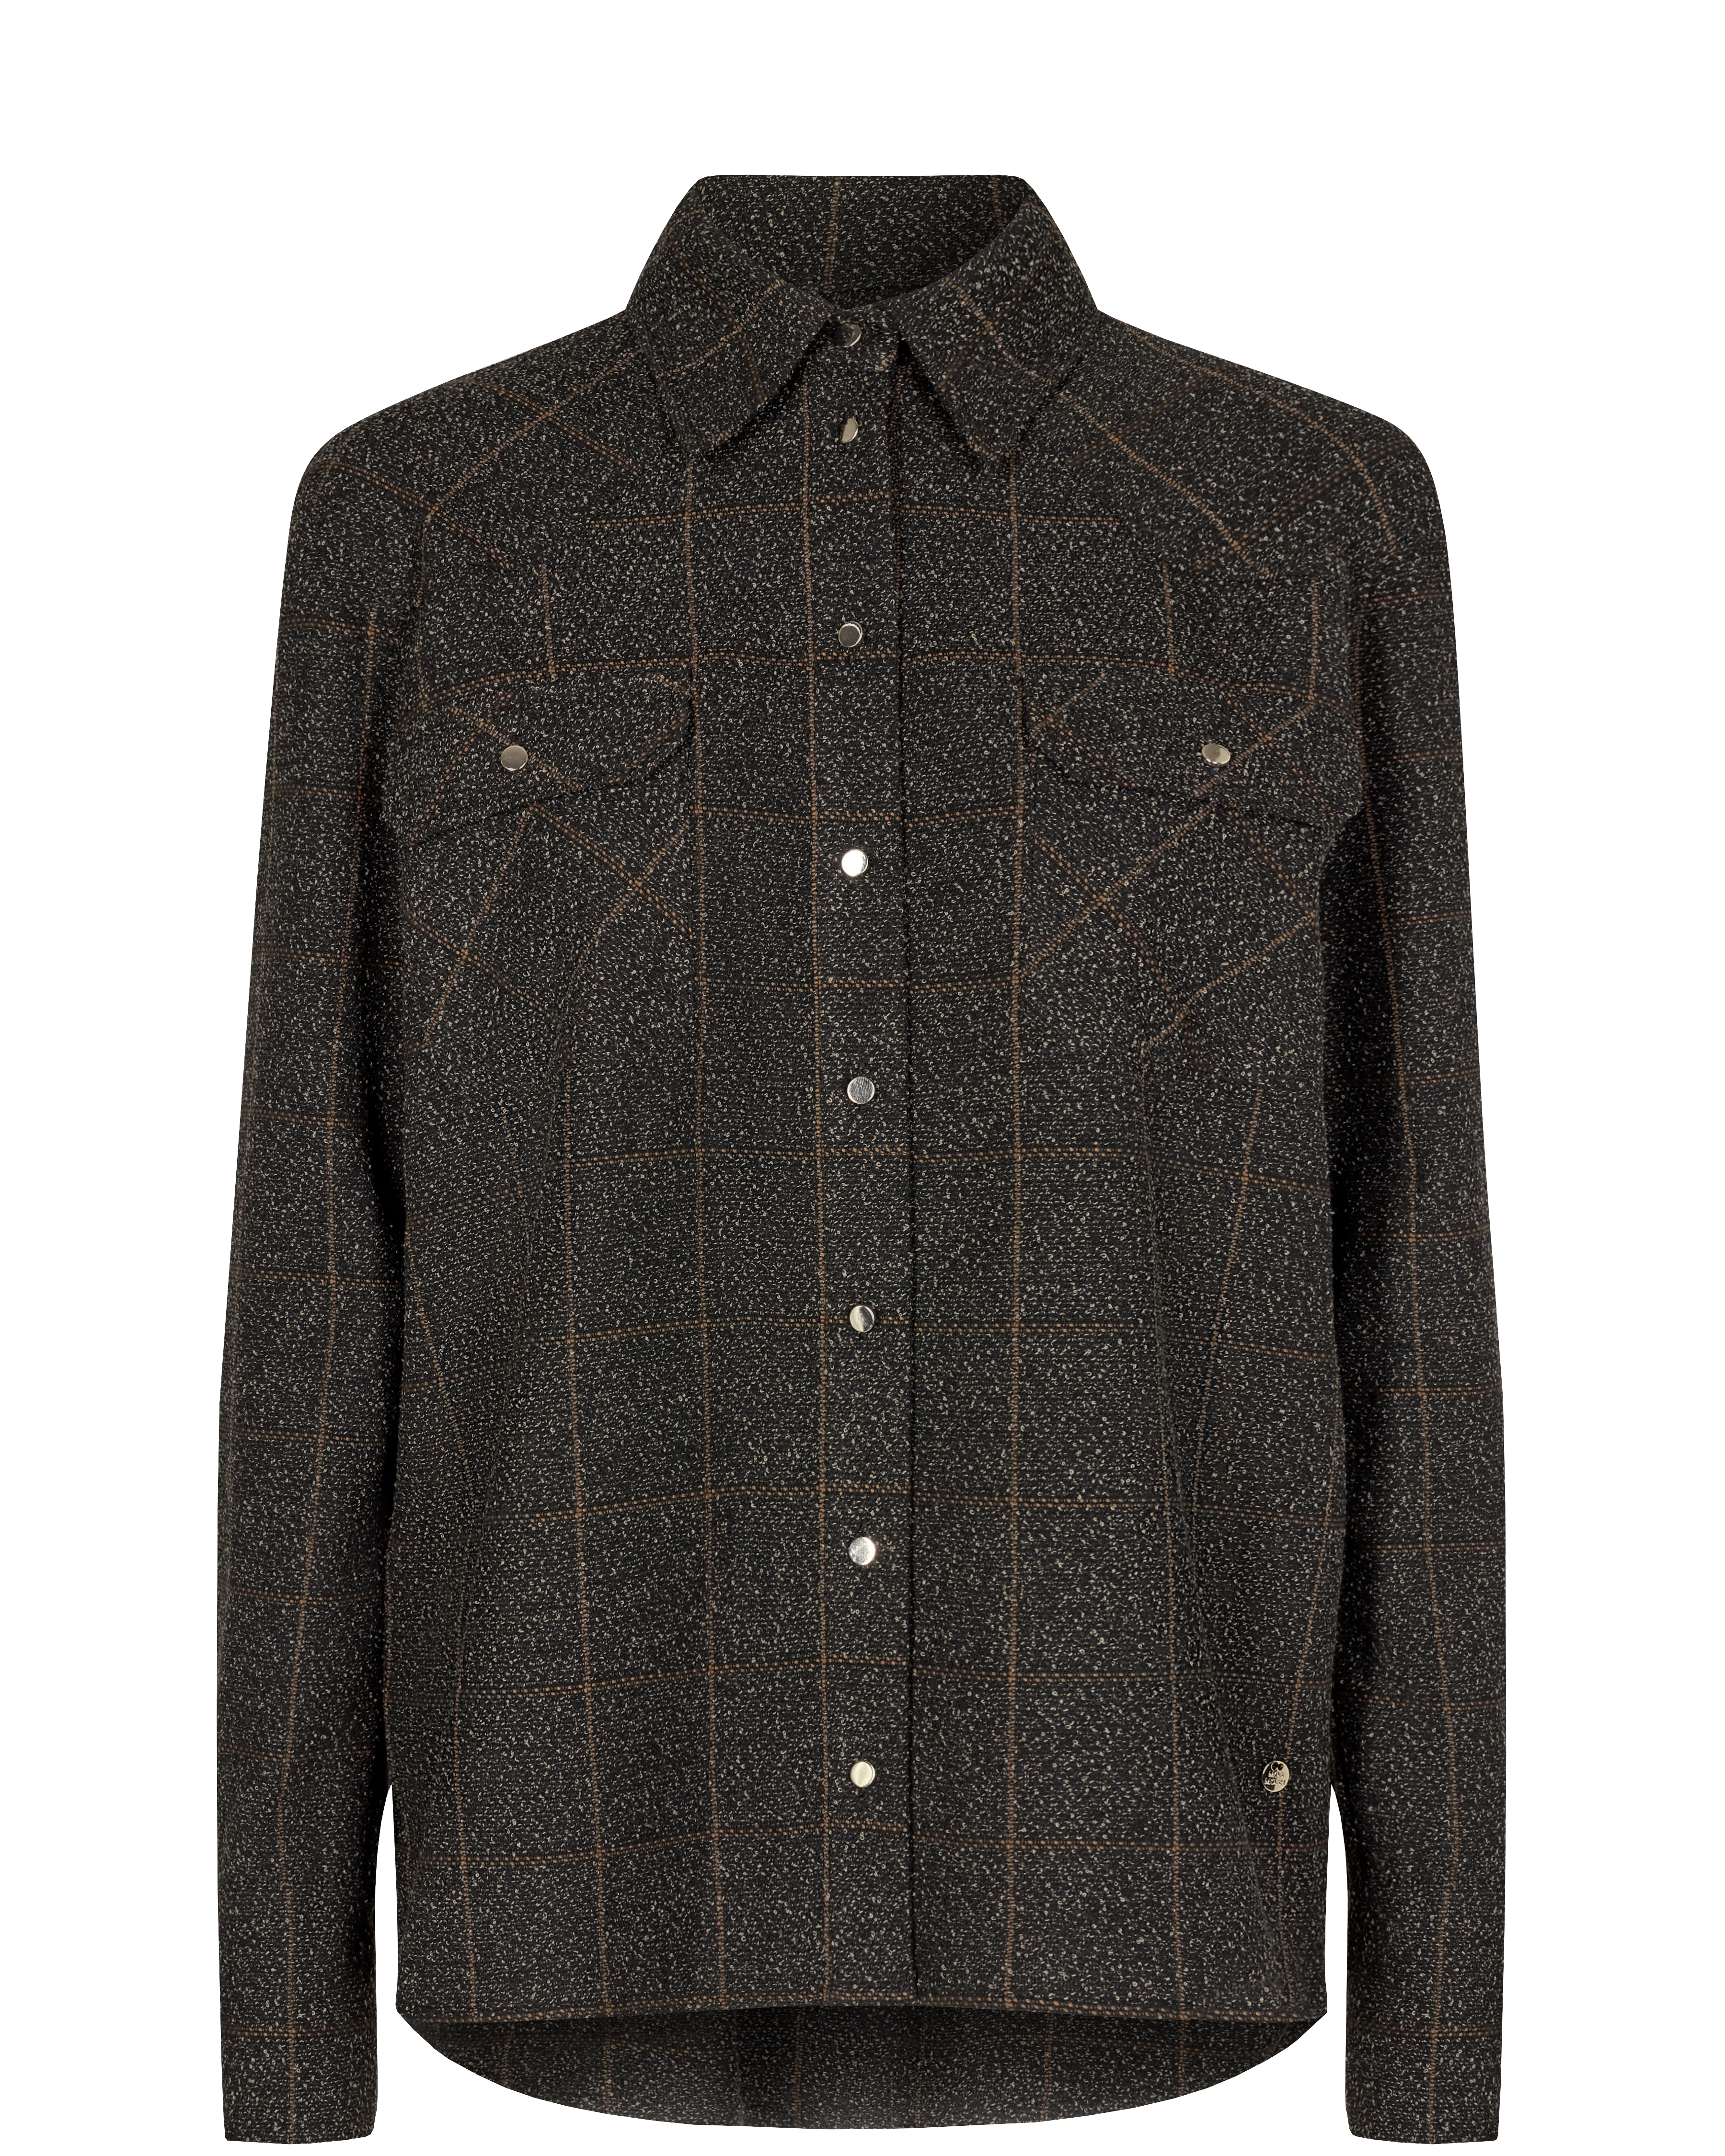 Mos Mosh Billy Boucle Shirt, chocolate chip, large